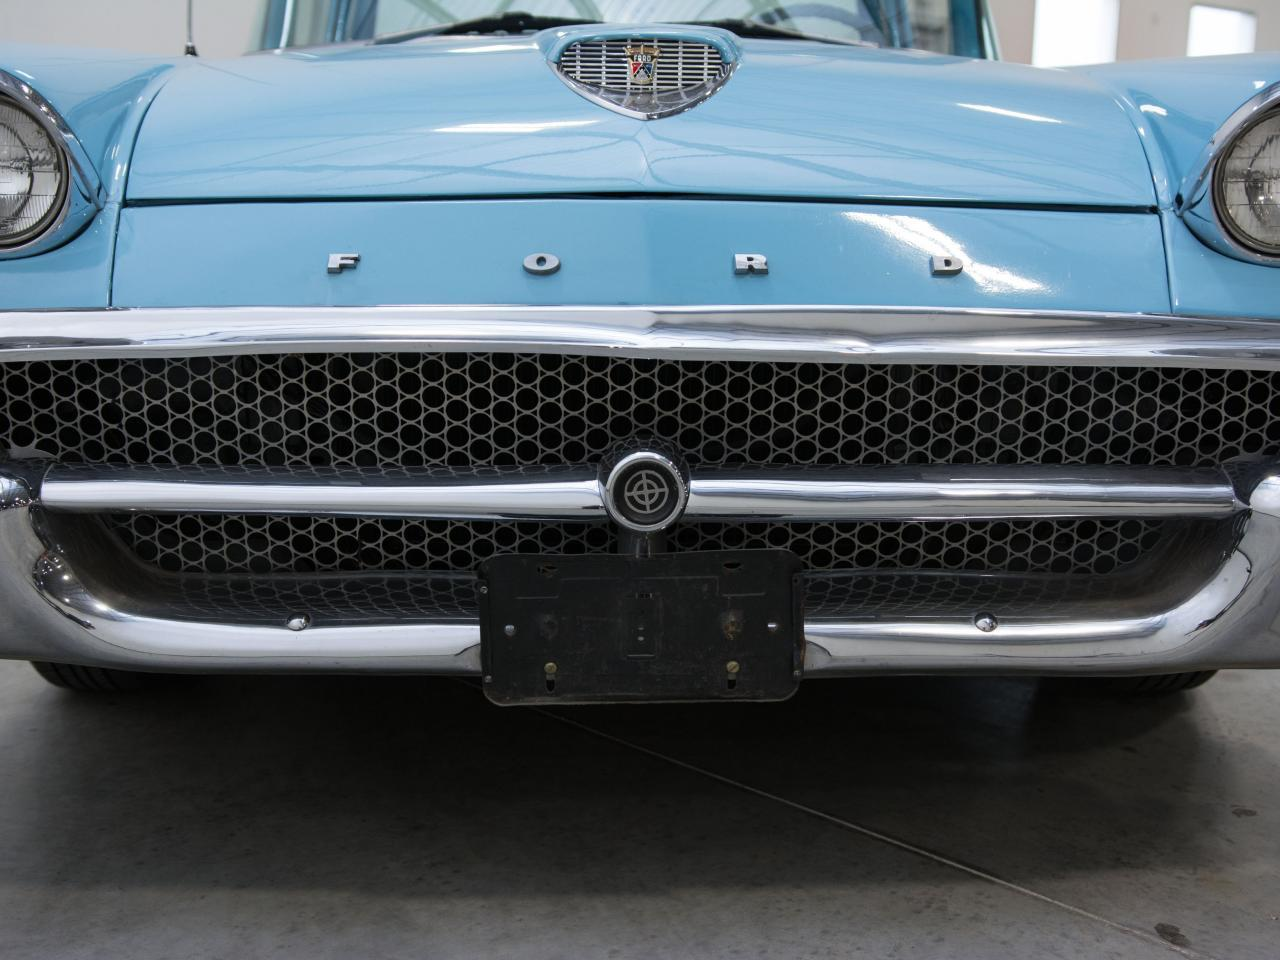 Large Picture of Classic '58 Ranchero located in Kenosha Wisconsin - $20,995.00 Offered by Gateway Classic Cars - Milwaukee - KH0V